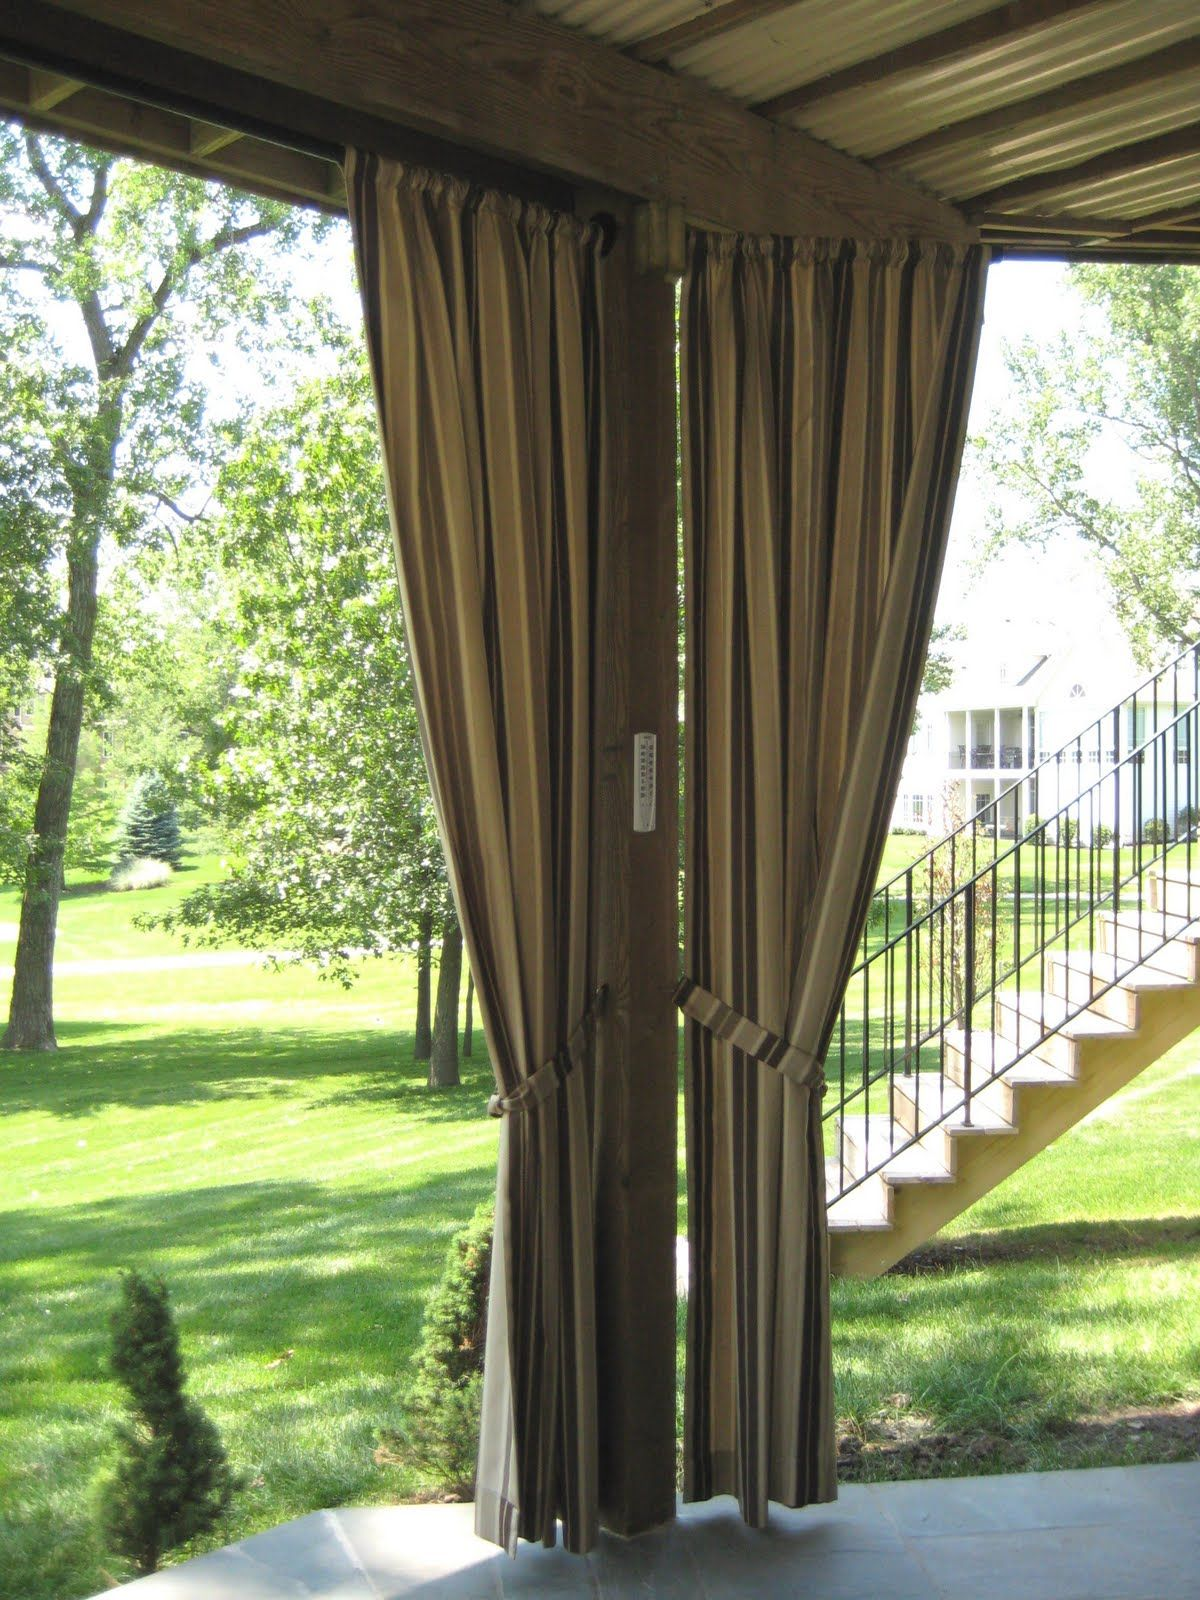 Outdoor Curtains Vitalia Inc Decorate With Outdoor Curtains And Draperies Outdoor Ideas